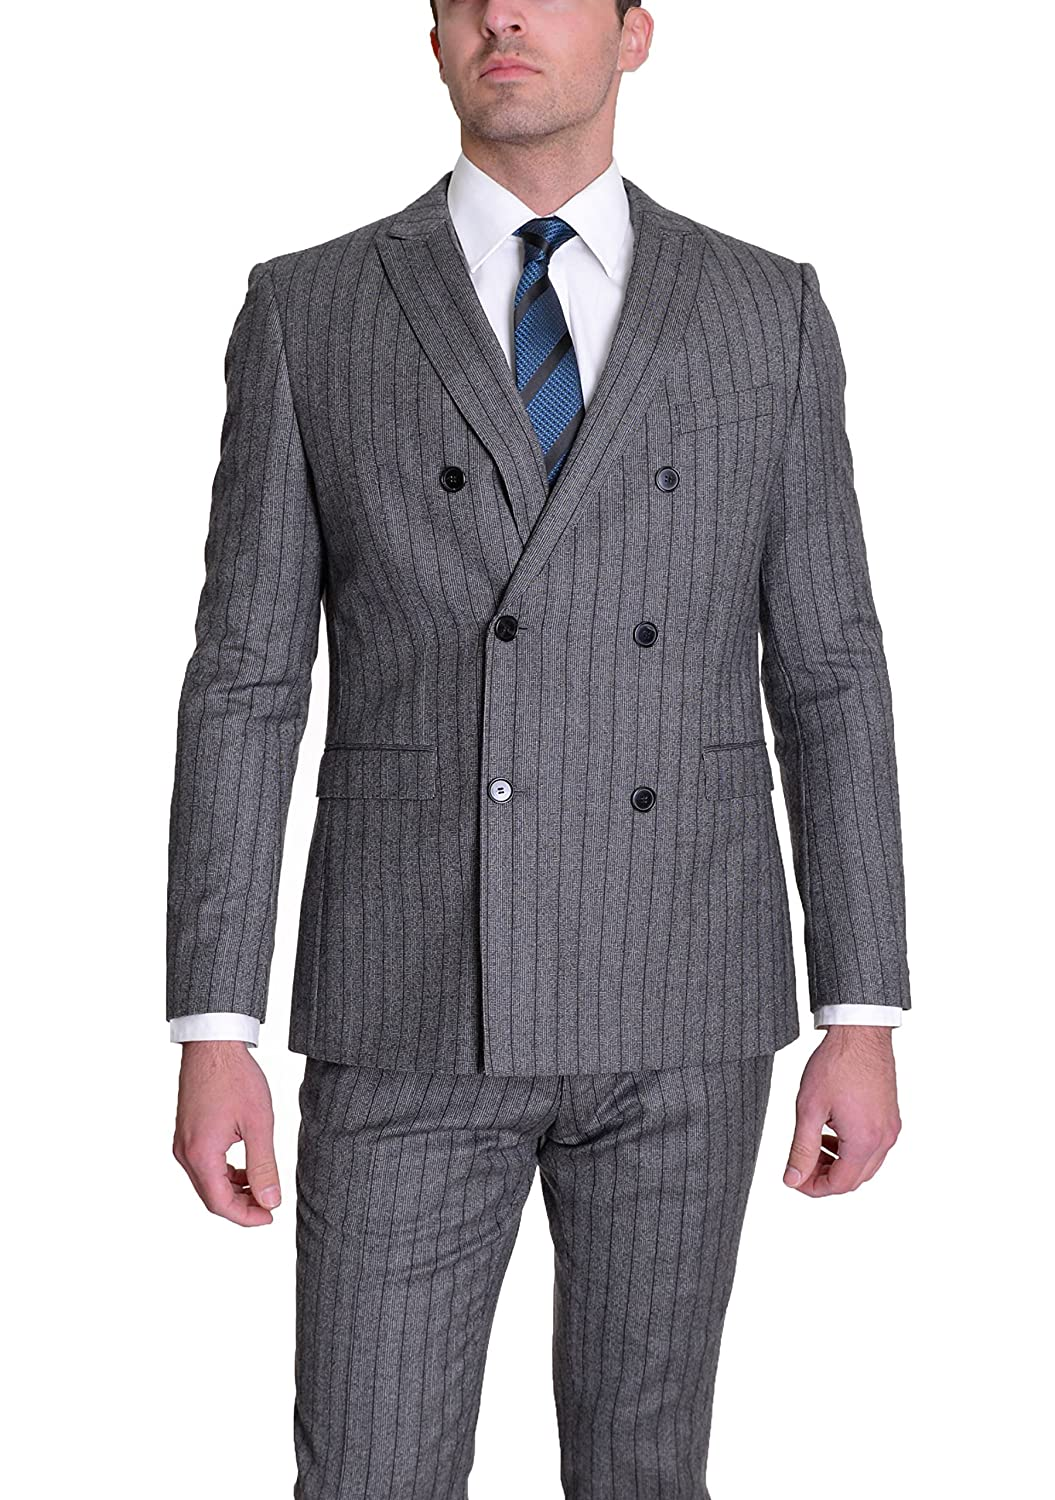 Hugo Boss Rusty/Win Slim Fit Gray Striped Double Breasted Flannel Wool Suit